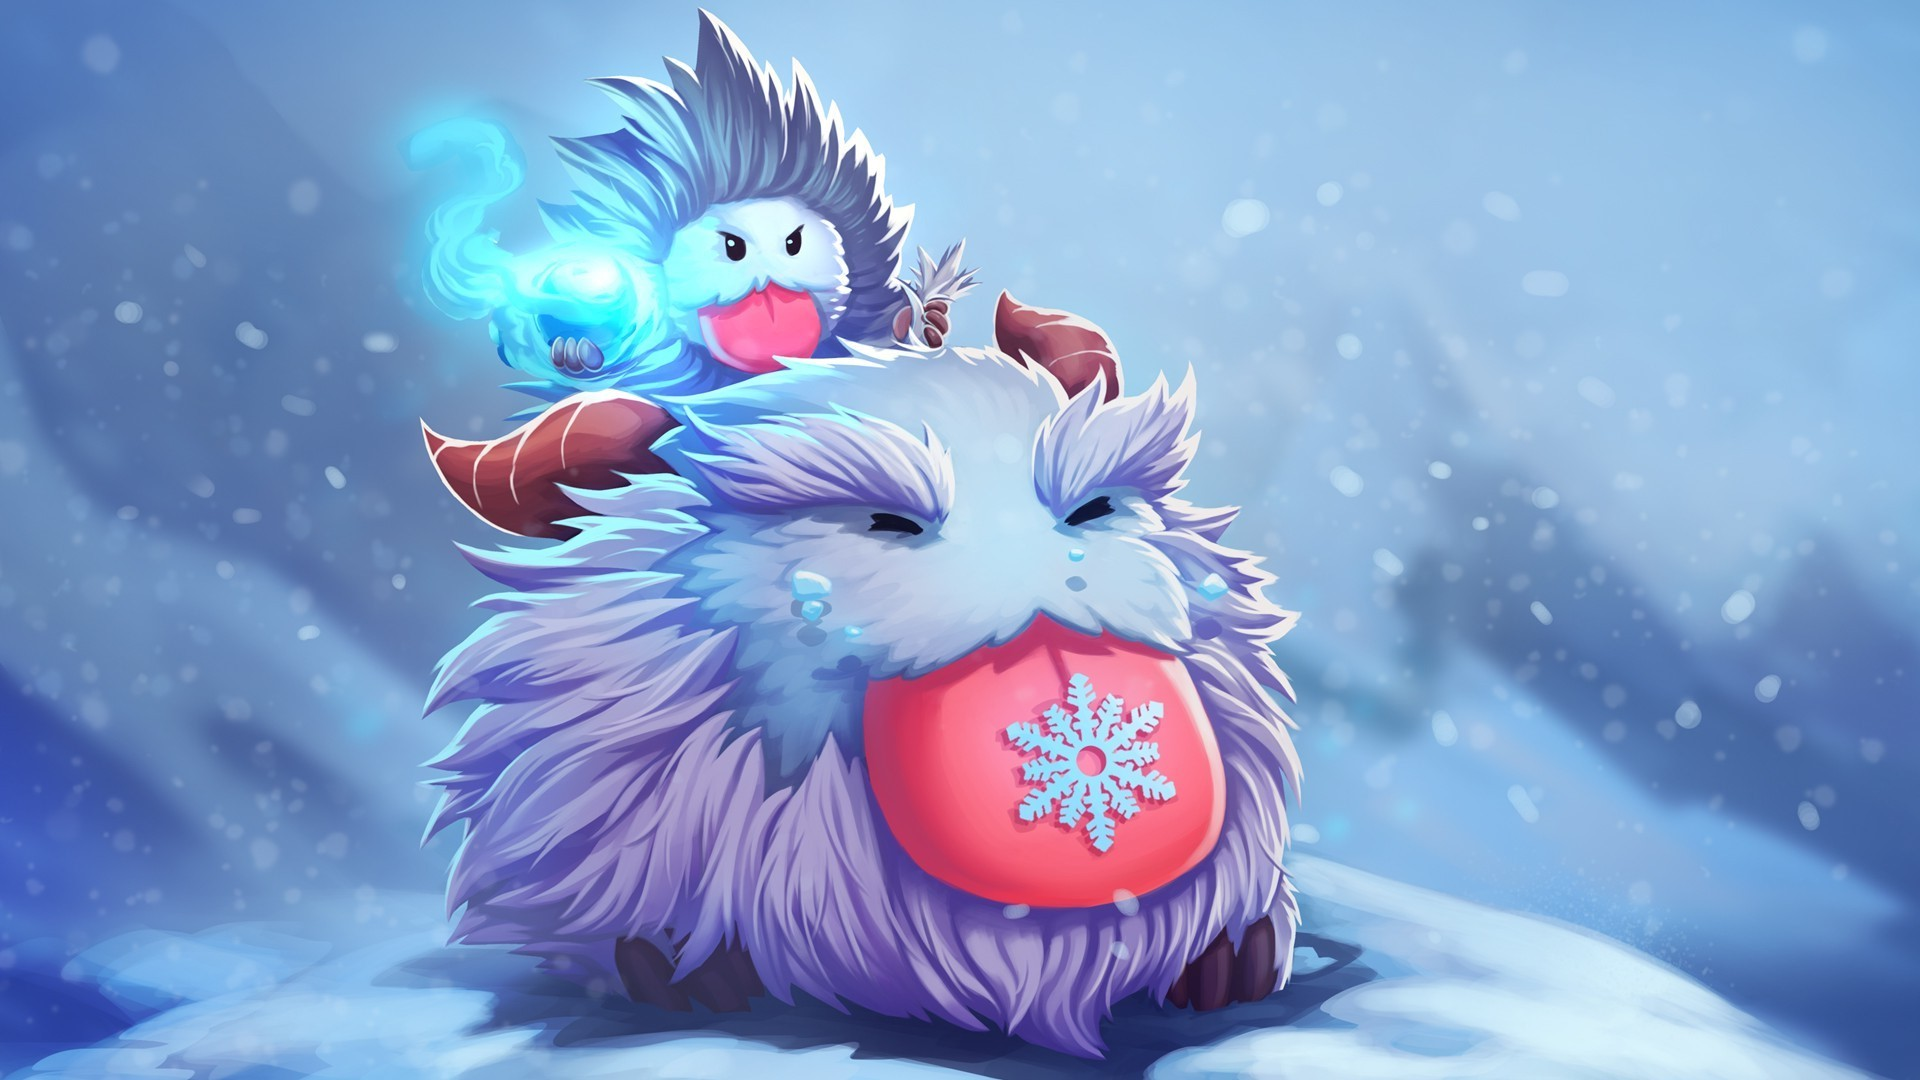 Poro Wallpapers Posted By Samantha Thompson